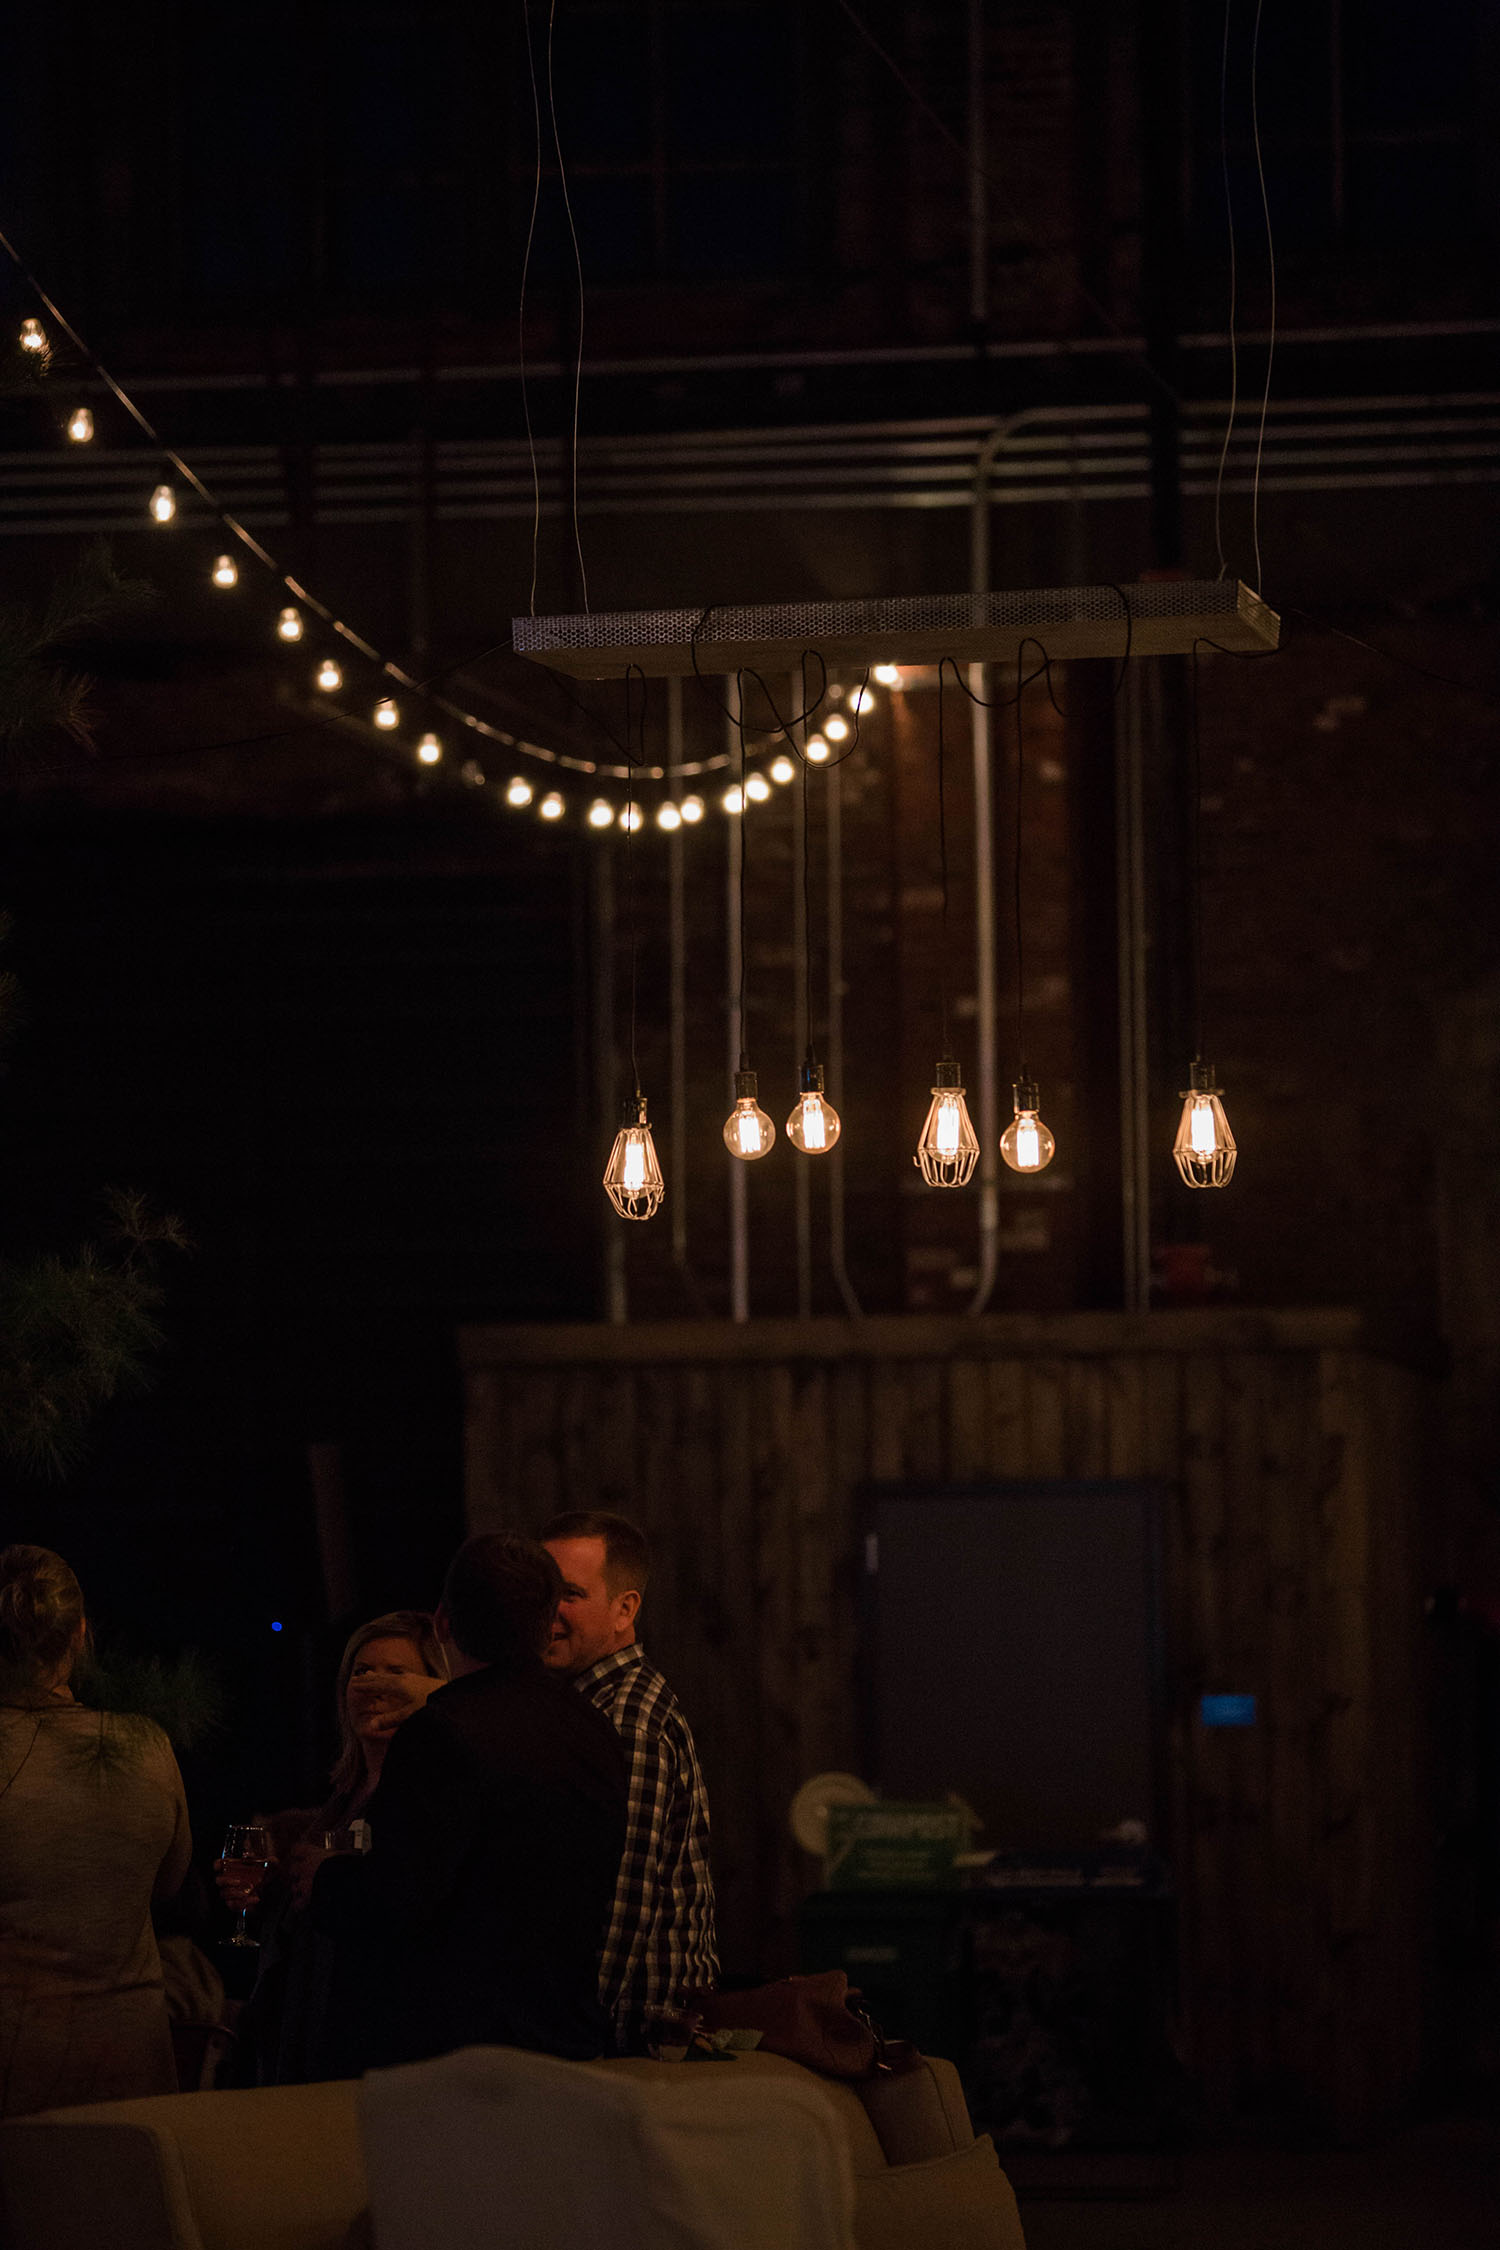 maine-event-lighting-at-thompsons-point-23